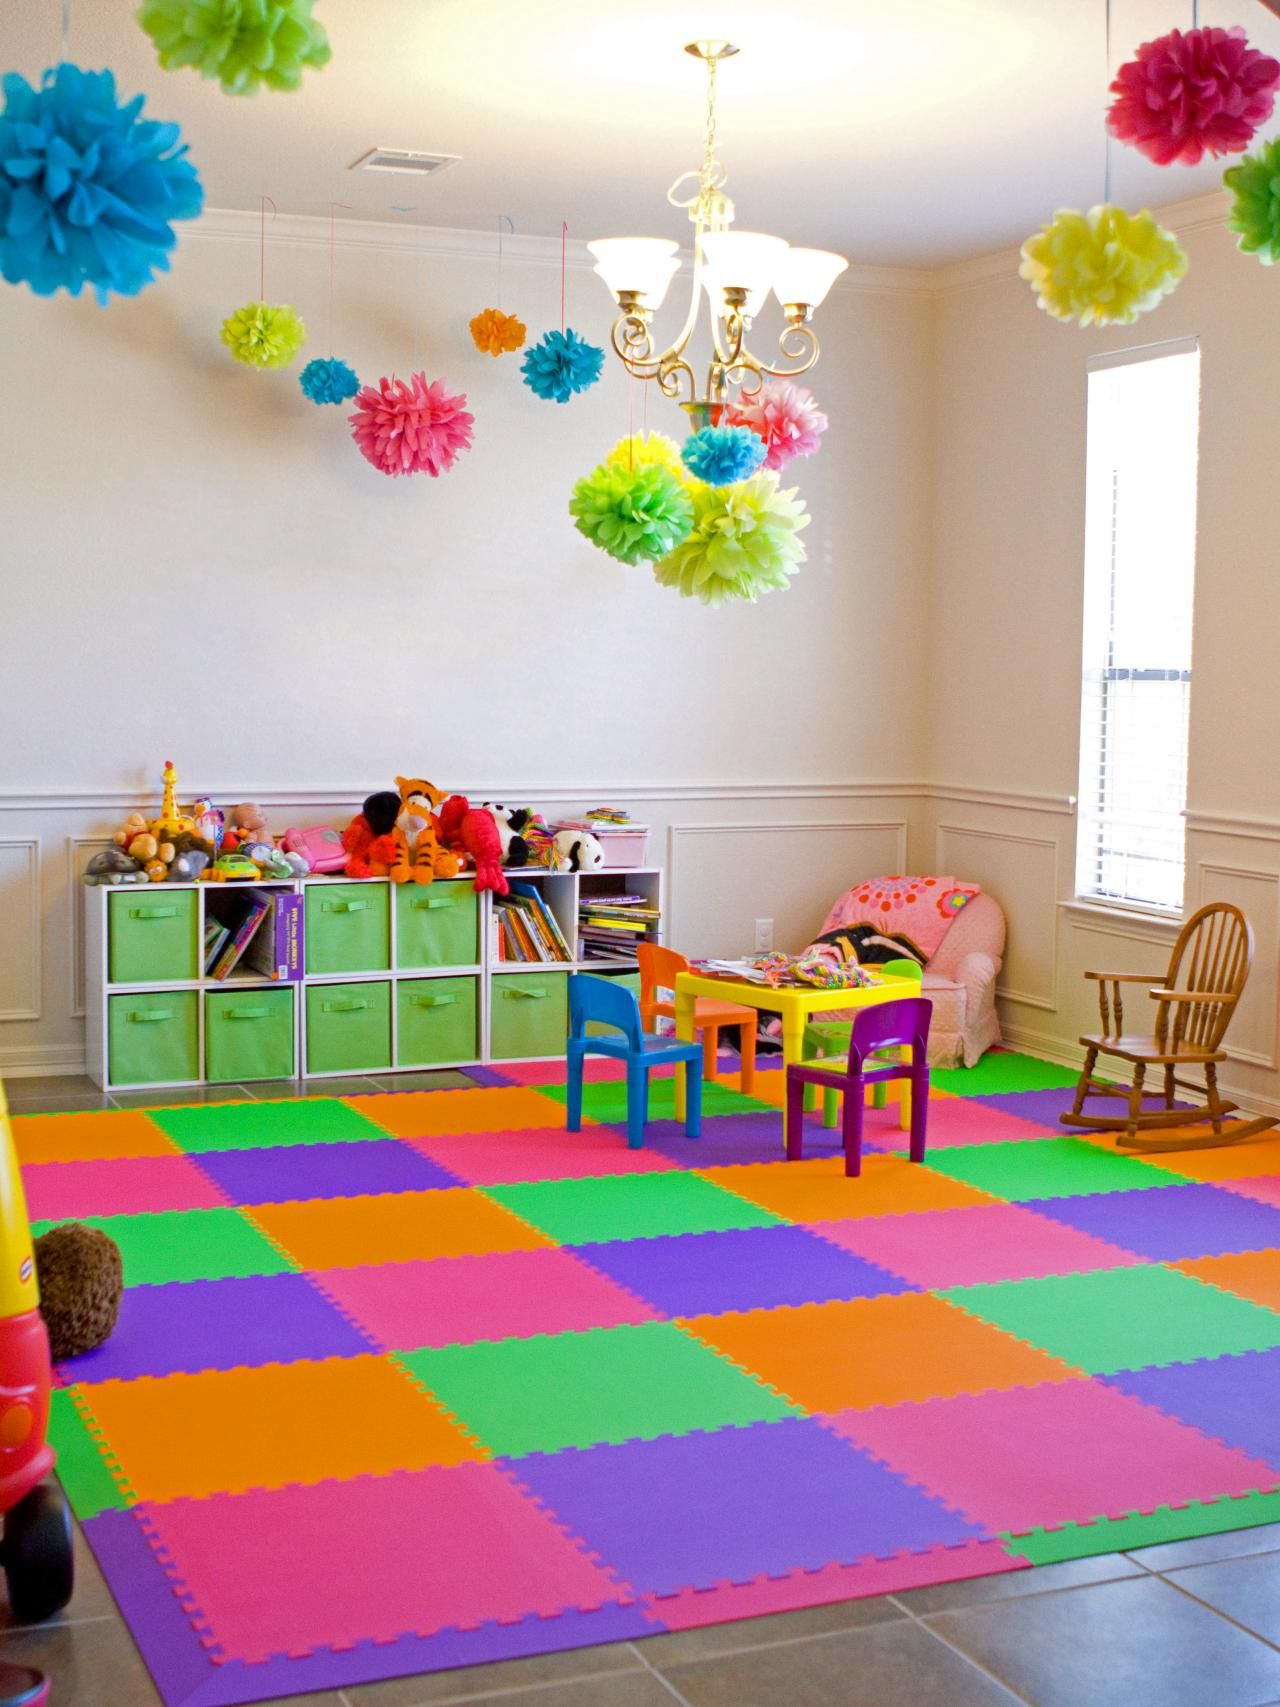 hang tissue pom poms from the ceiling